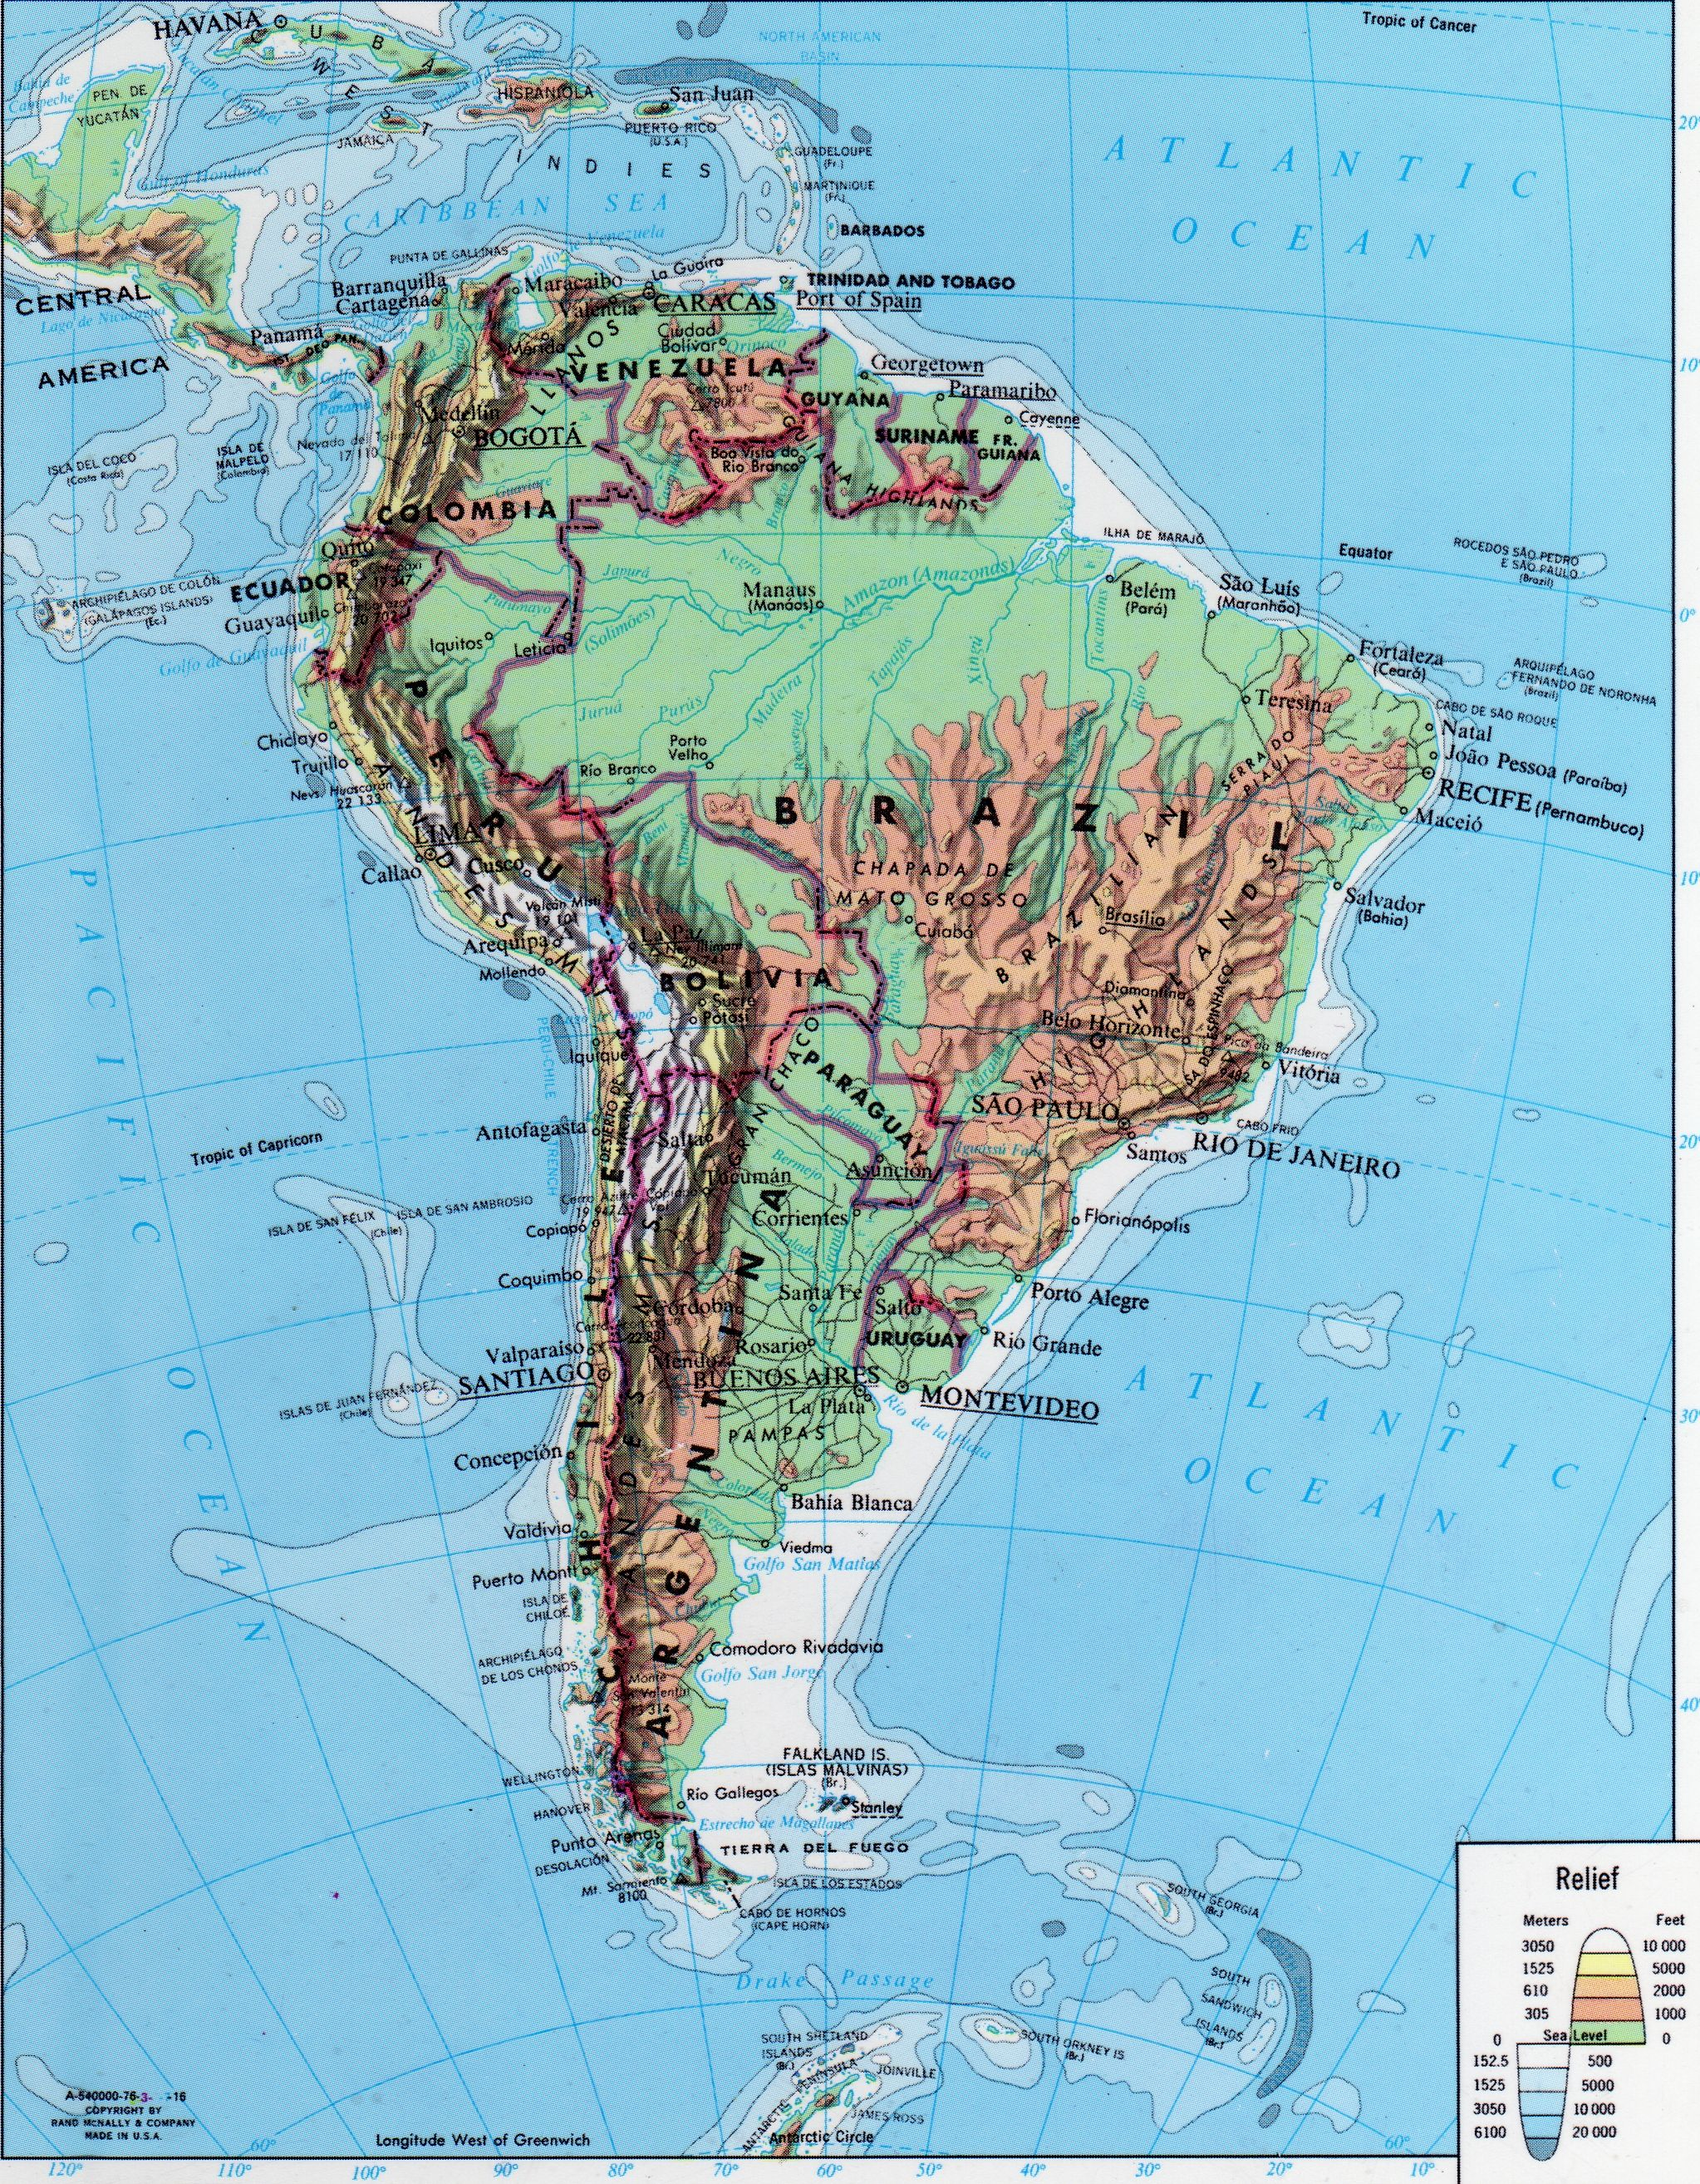 Andes Mountains | Map, Andes mountains, South america